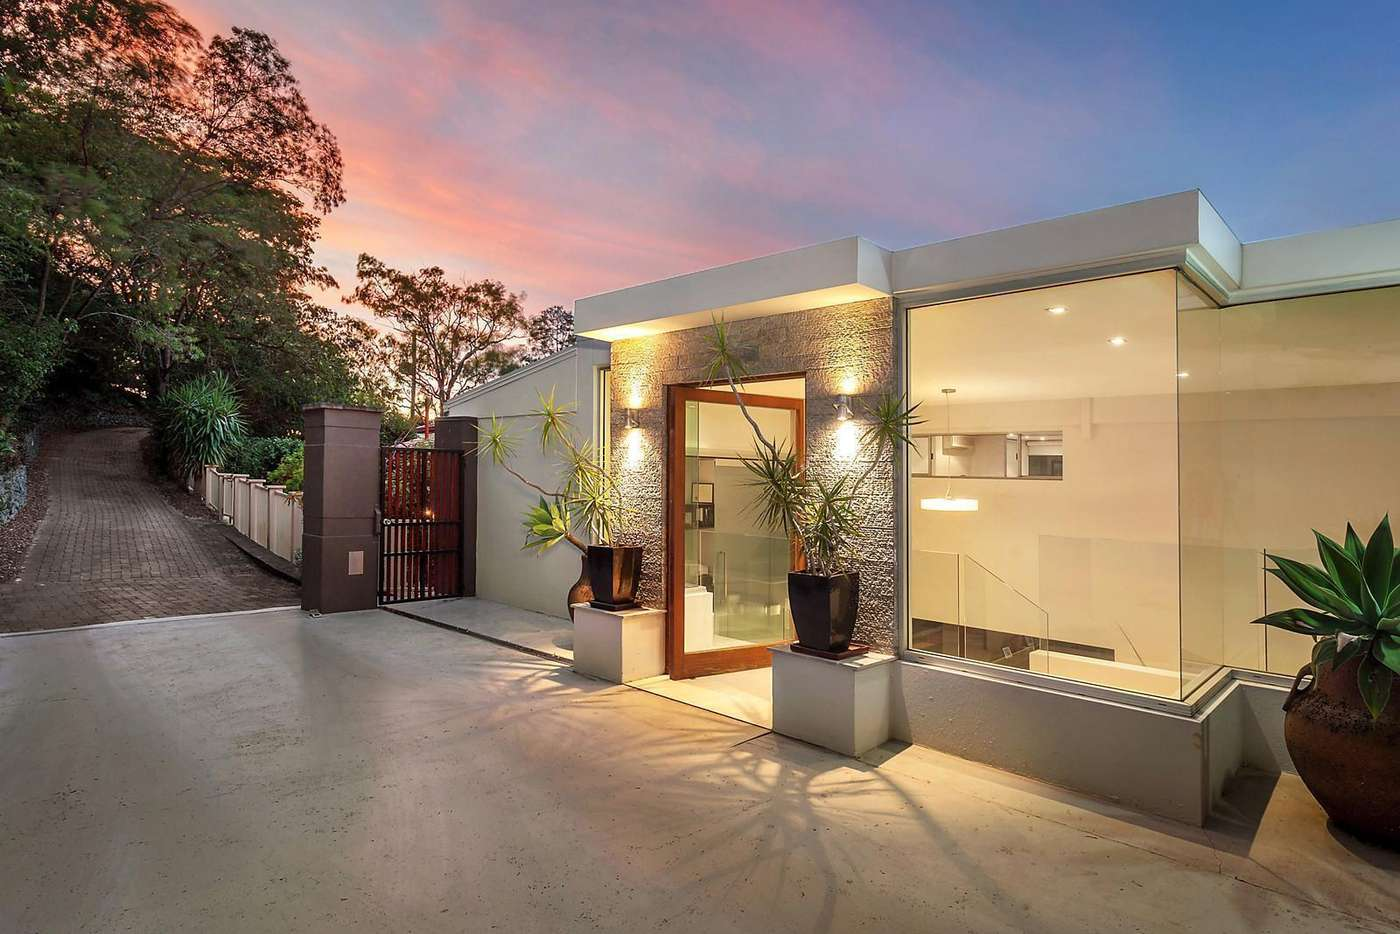 Main view of Homely house listing, 60 Queens Road, Hamilton QLD 4007